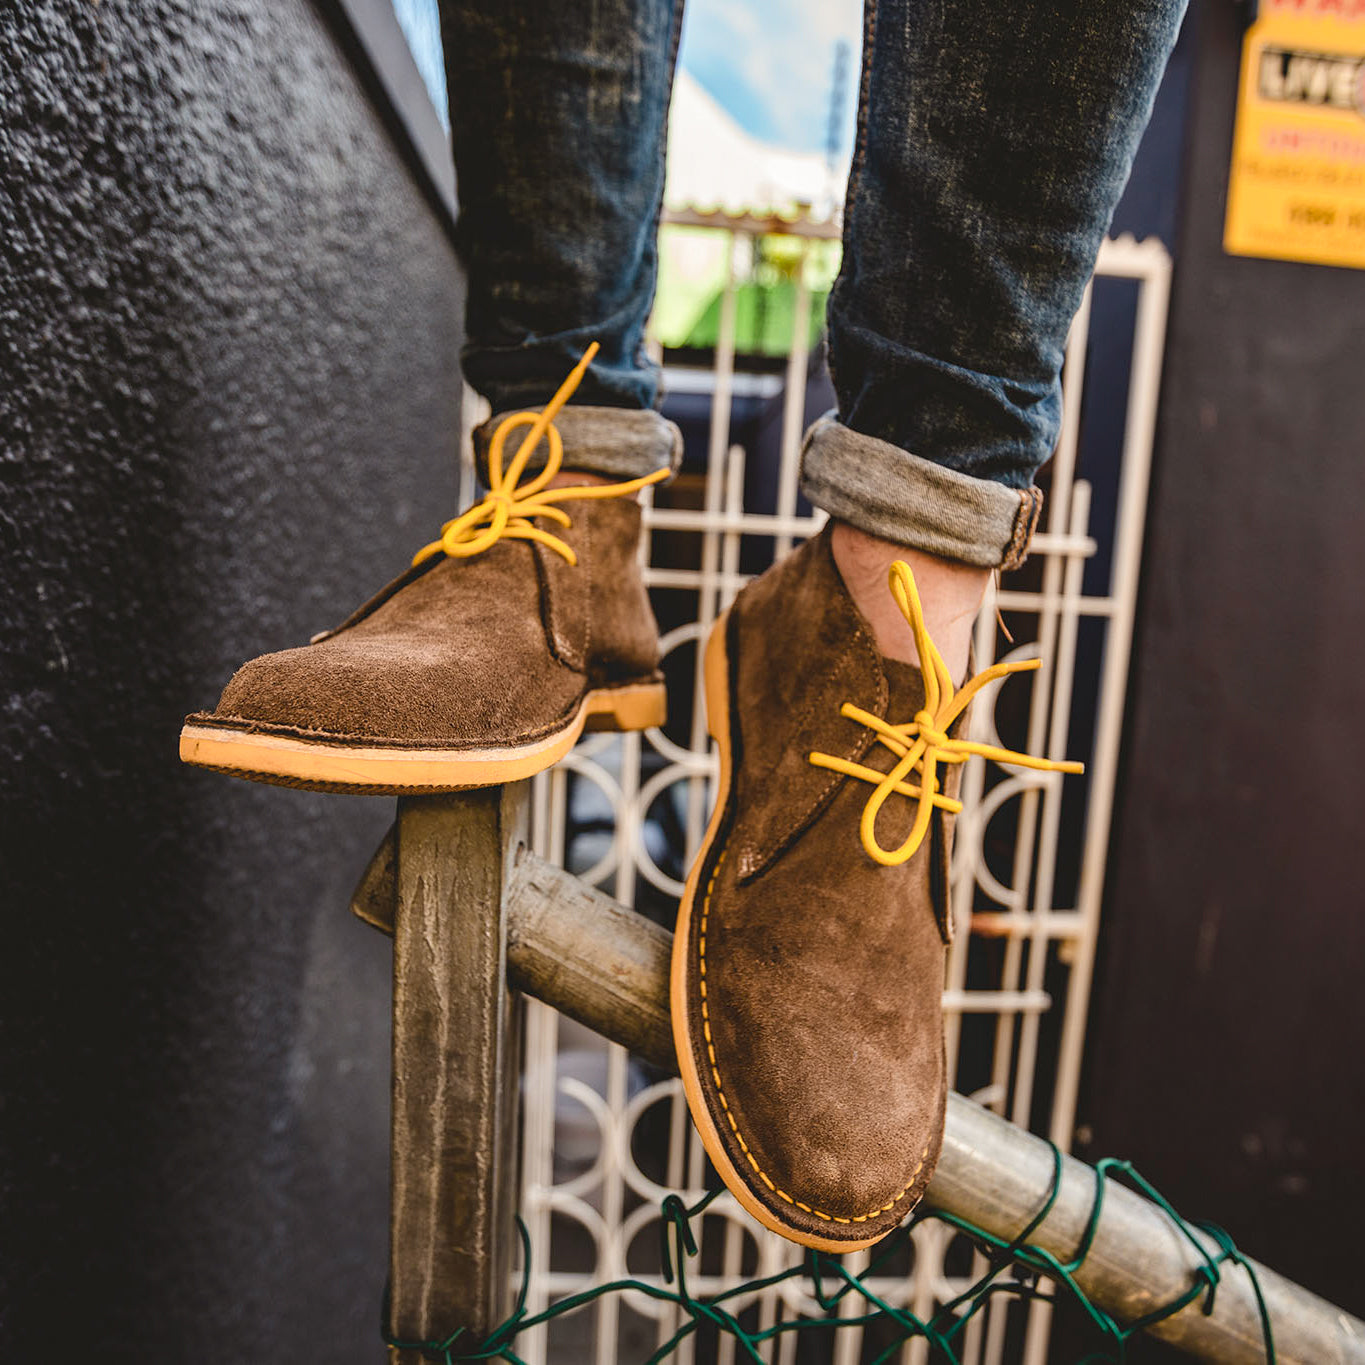 Veldskoen shoes and boots or known as vellies heritage boot ethically and sustainably handcrafted in South Africa sold in united states man standing on fence wearing jeans and yeallow Veldskoene